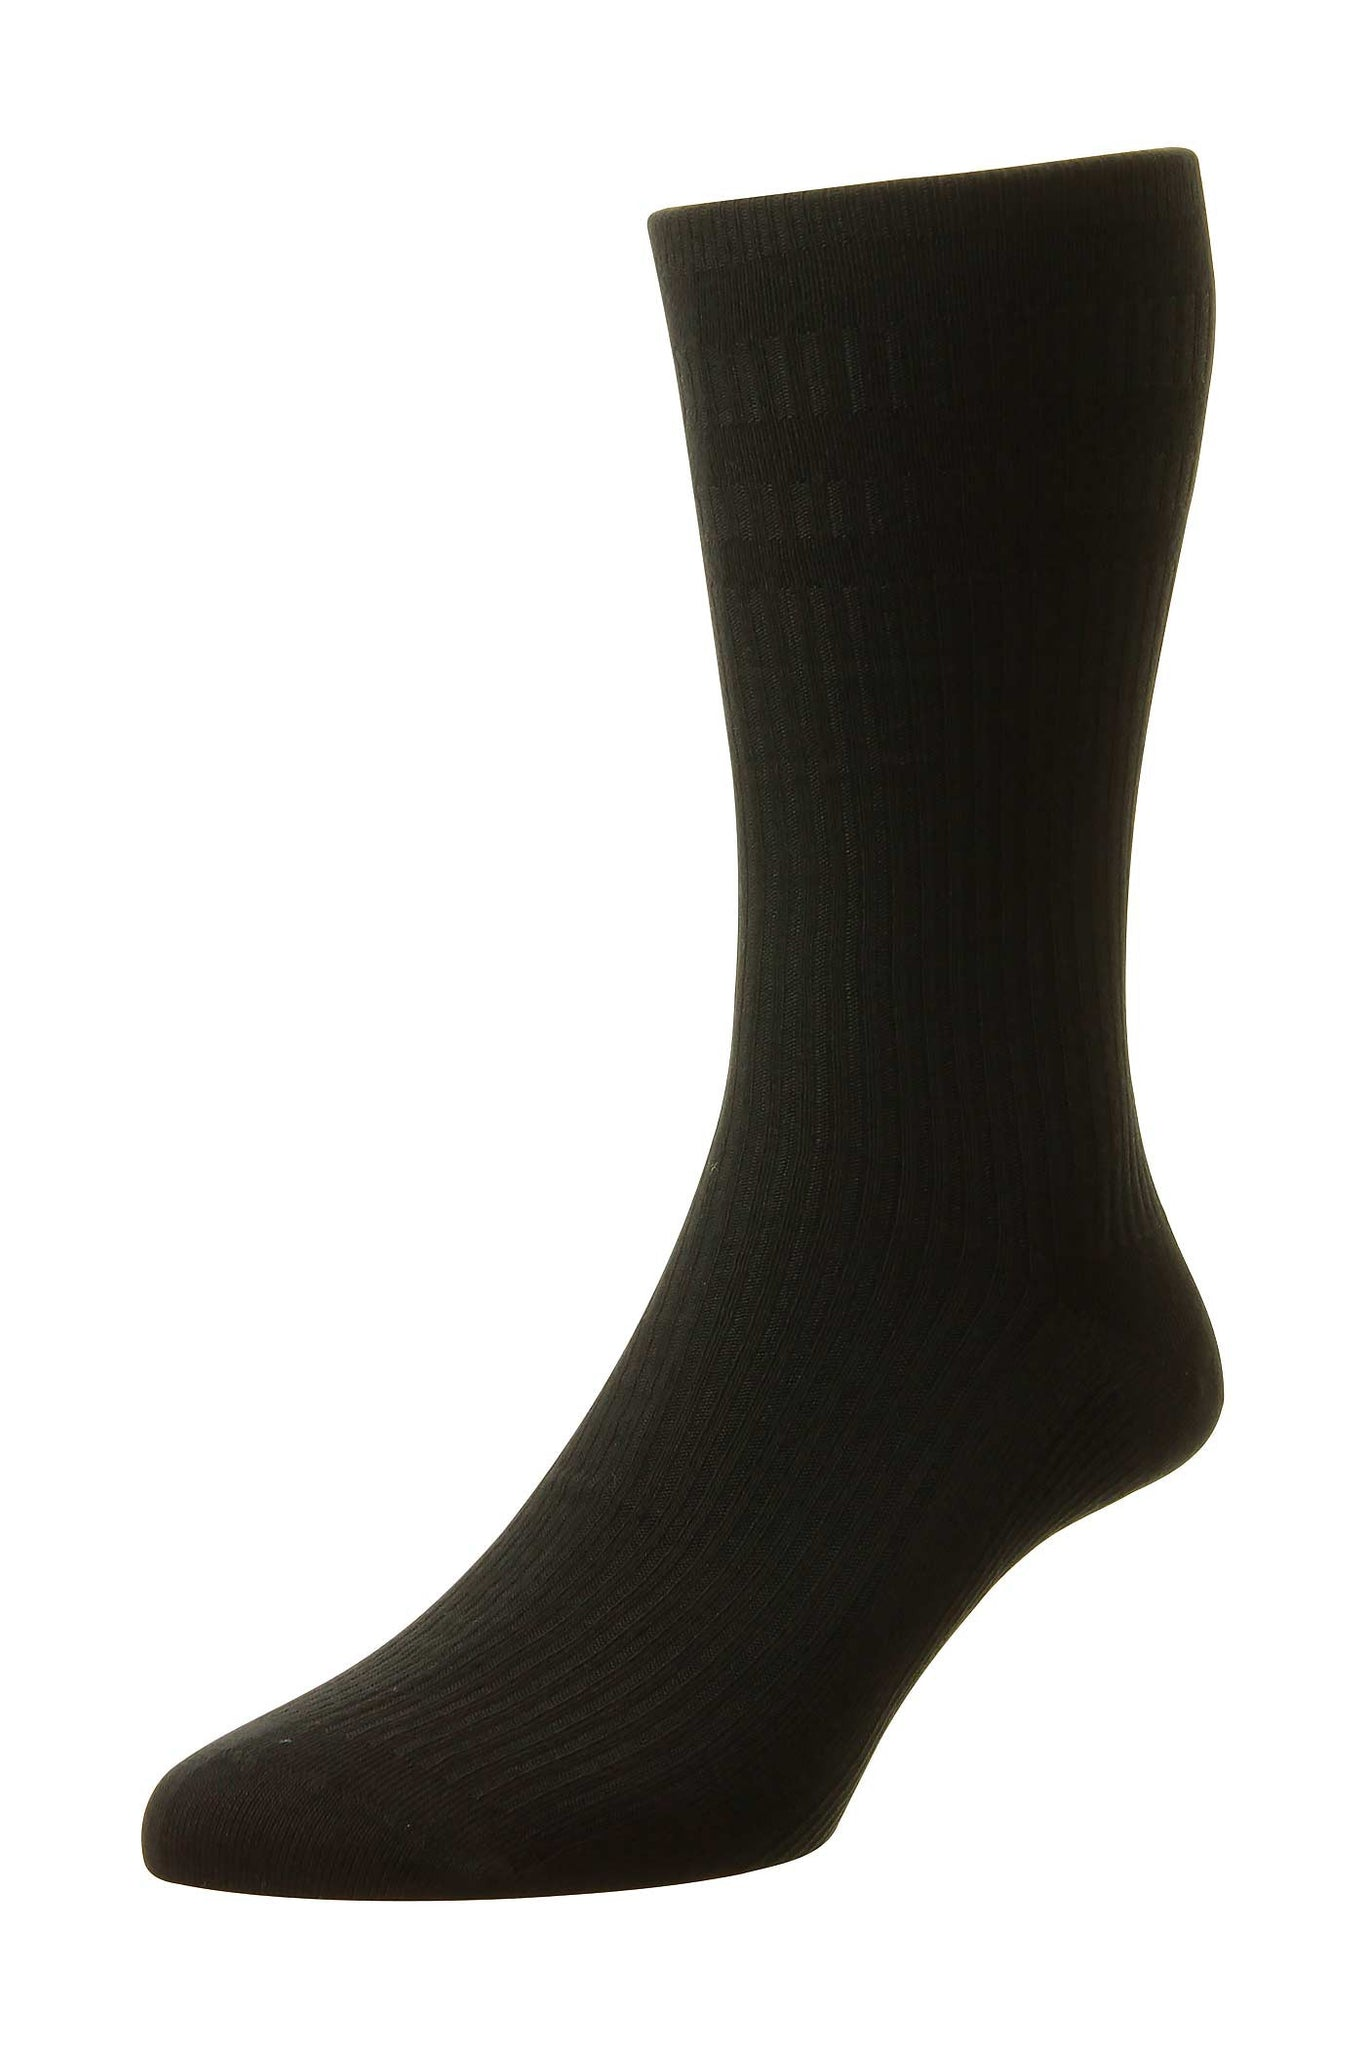 soft top extra wide mens socks